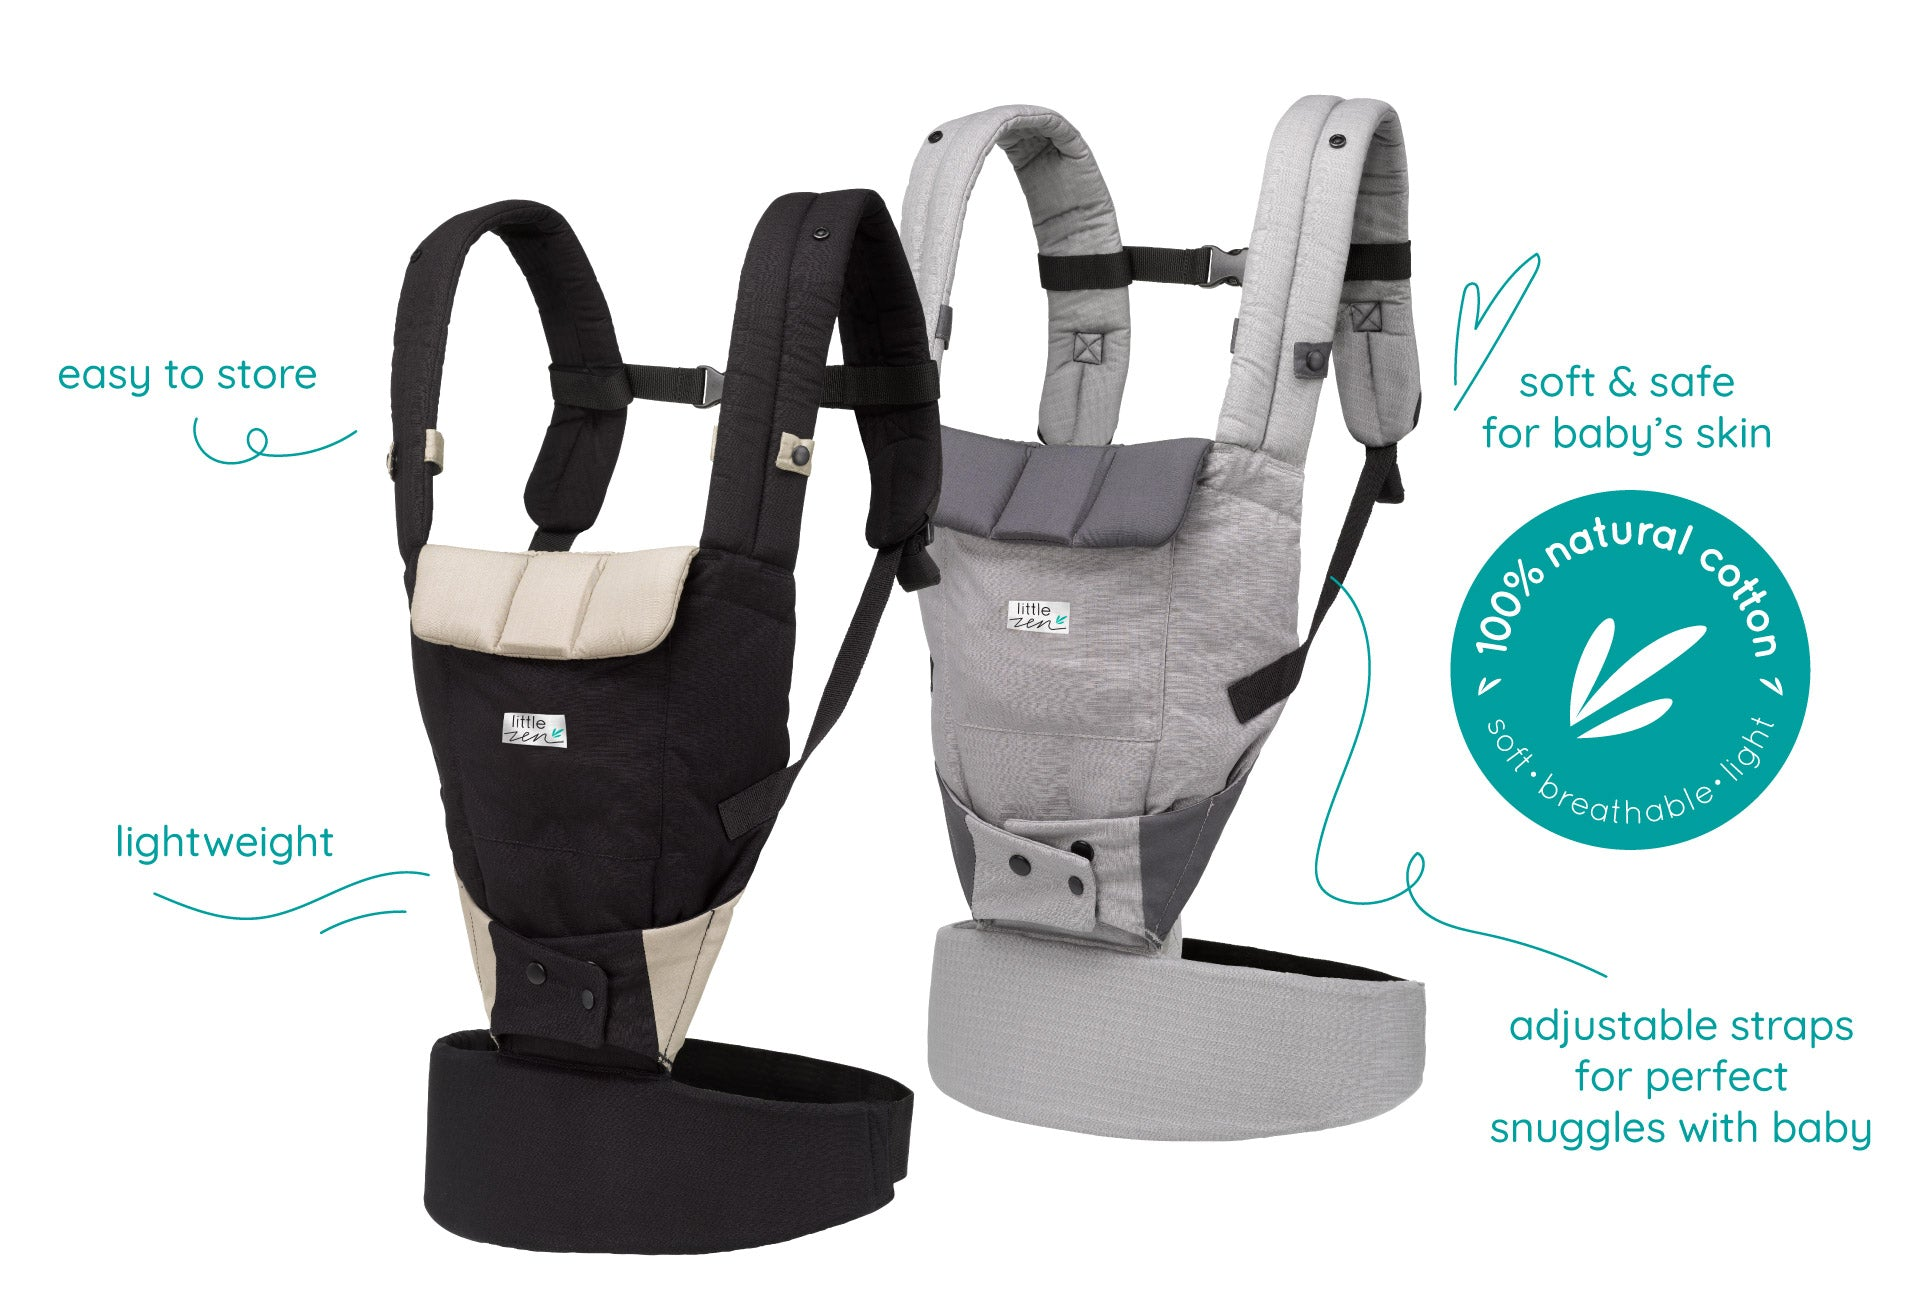 little zen soft baby carrier - soft, breathable, light with 100% natural cotton